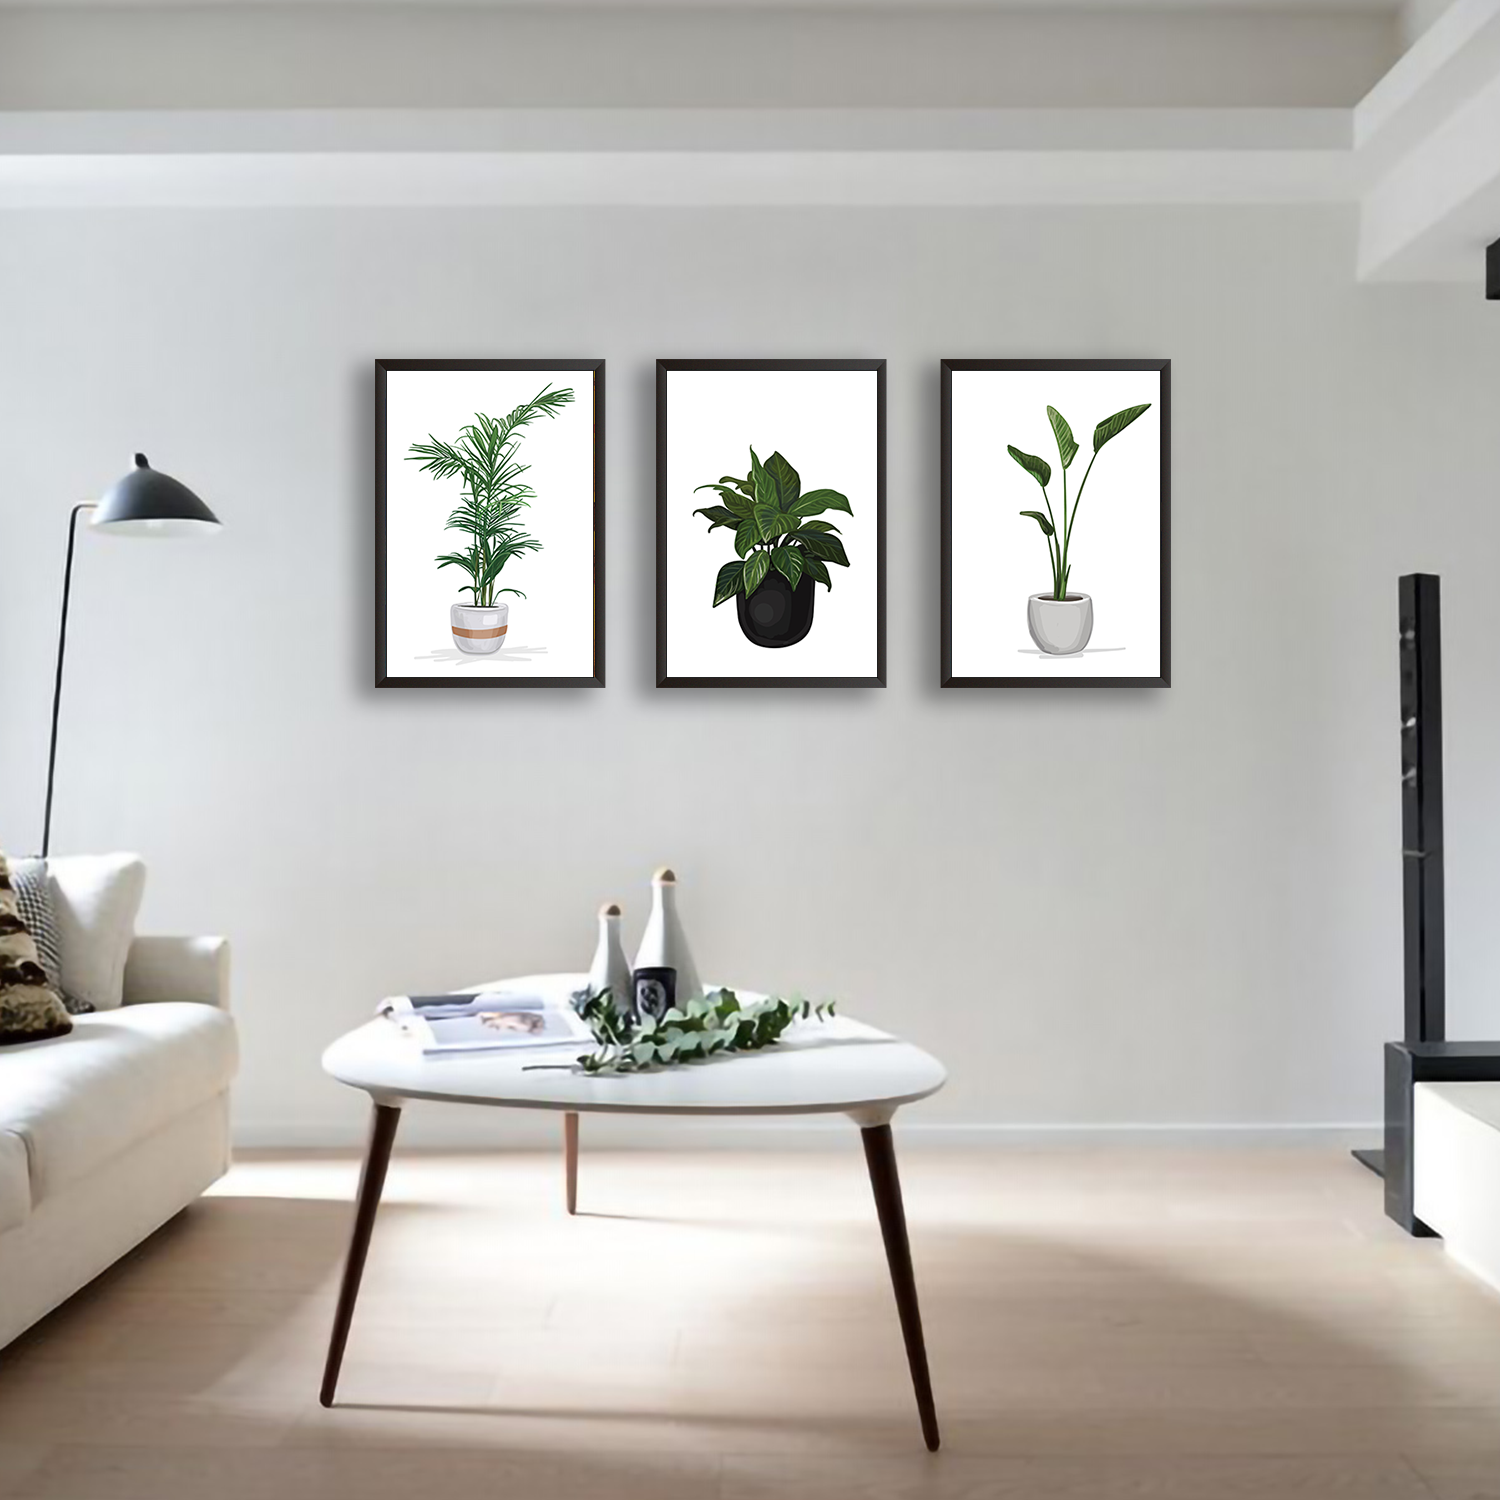 Plant Pots - Set of 3 Frames